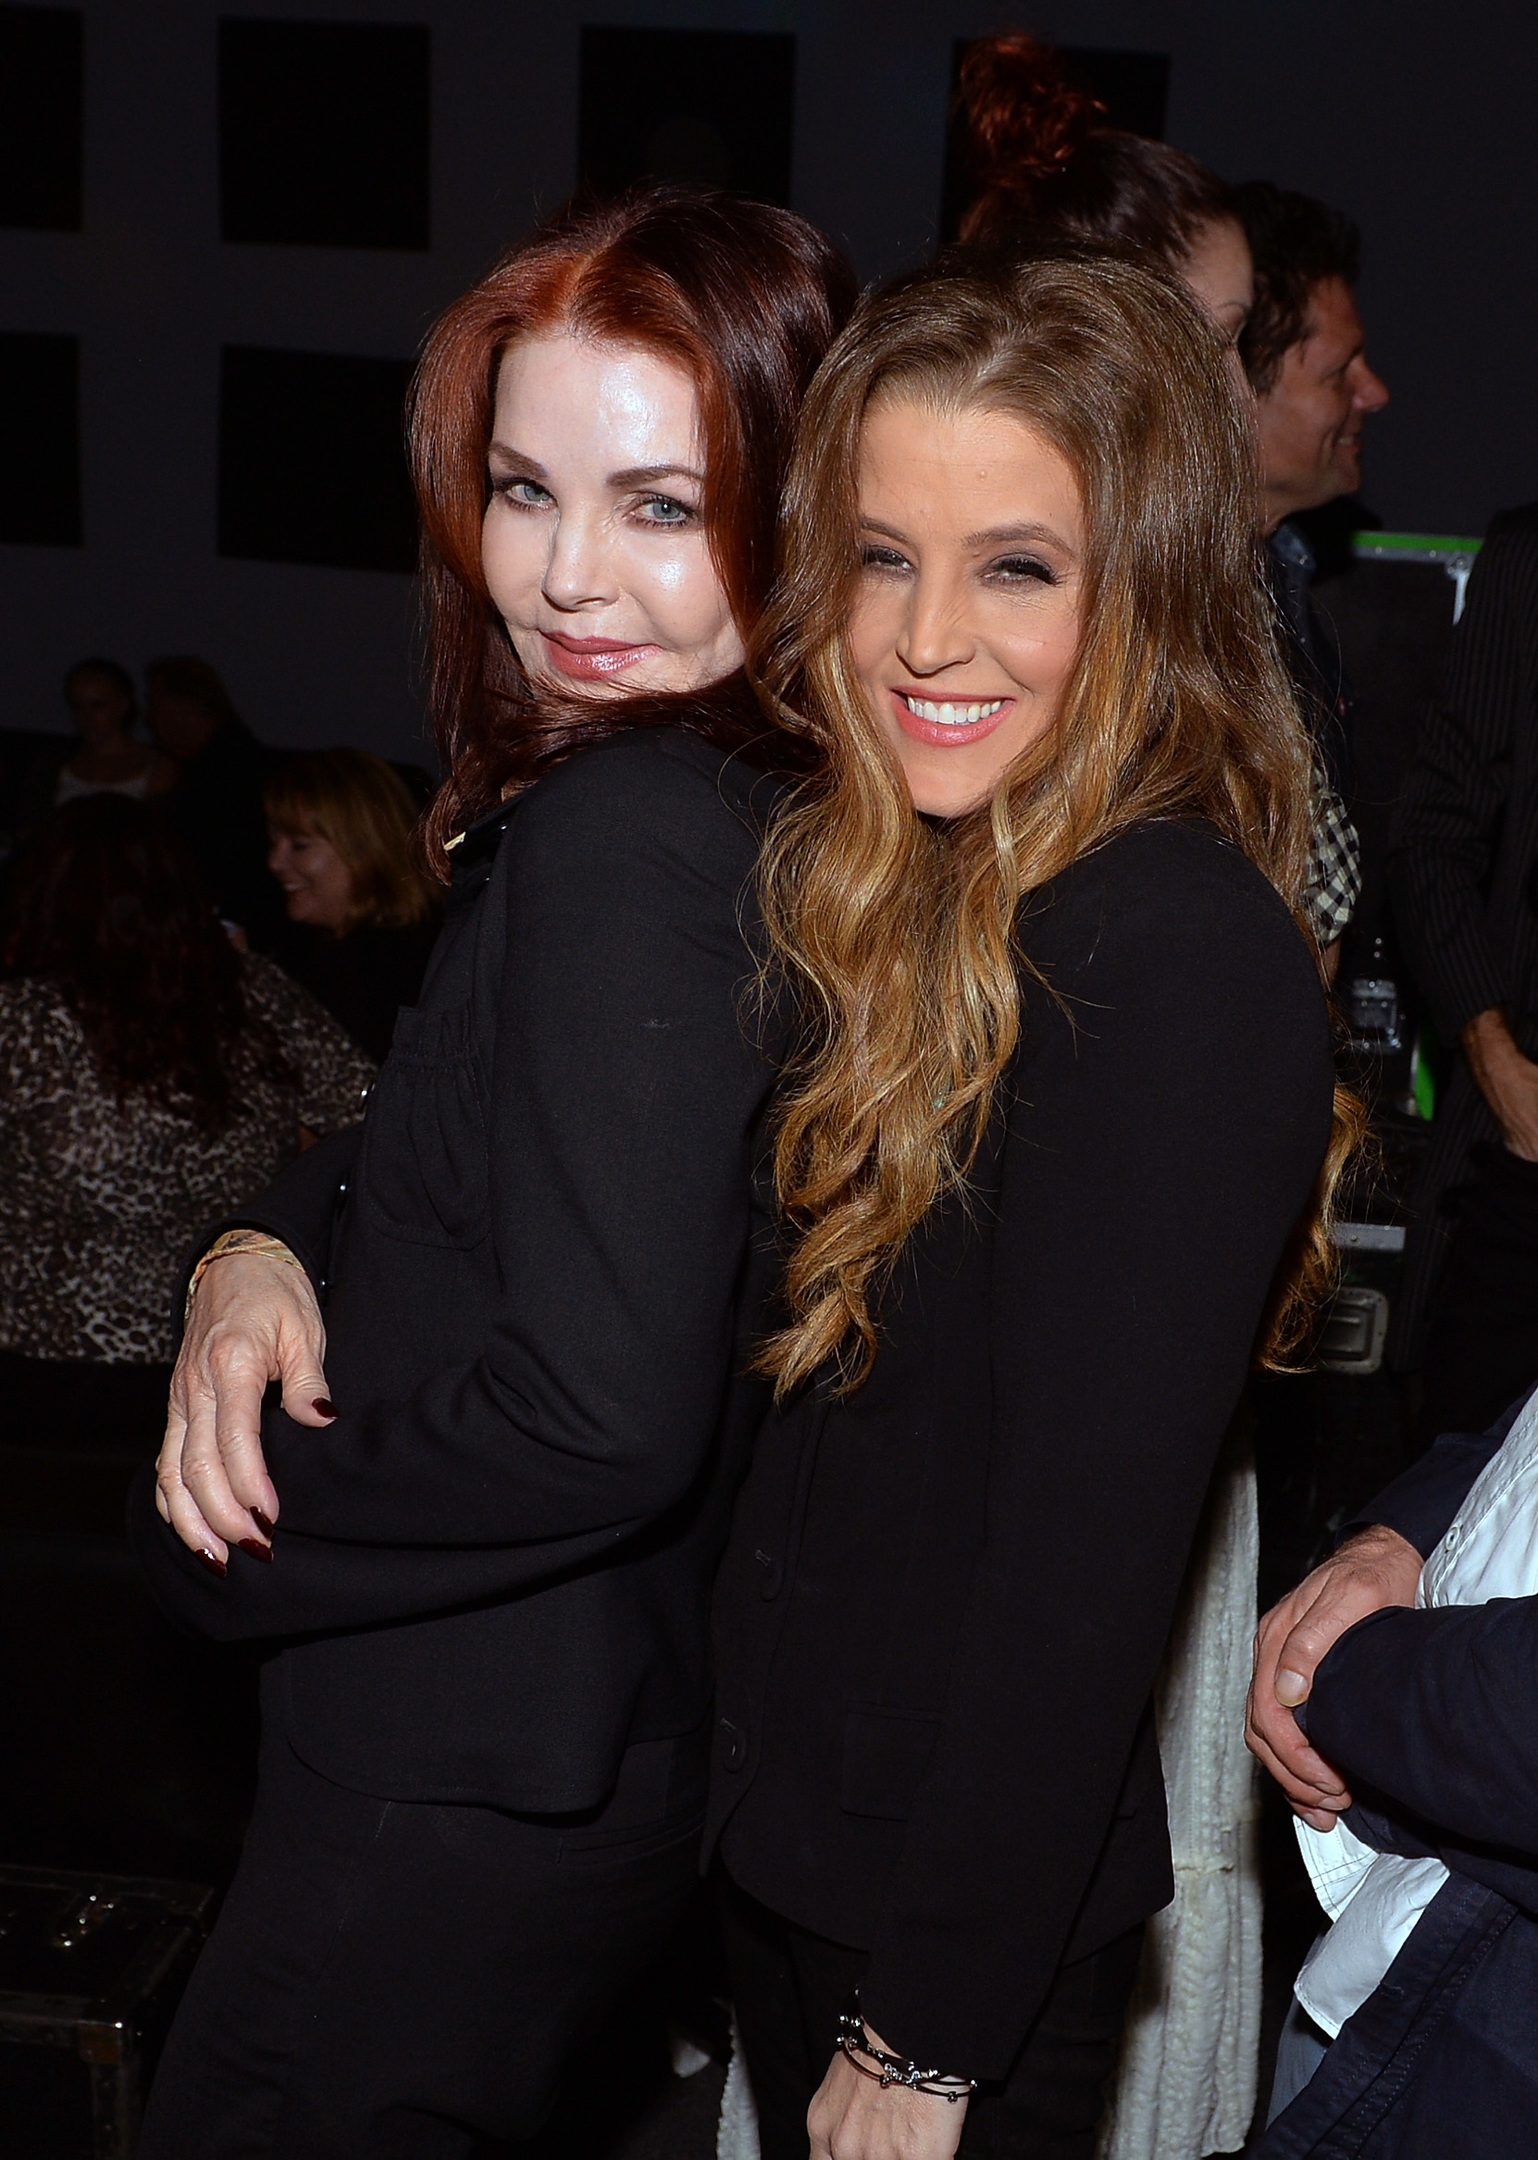 Priscilla Presley with her daughter Lisa Marie Presley (Photo by Rick Diamond/Getty Images for Americana Music Festival)